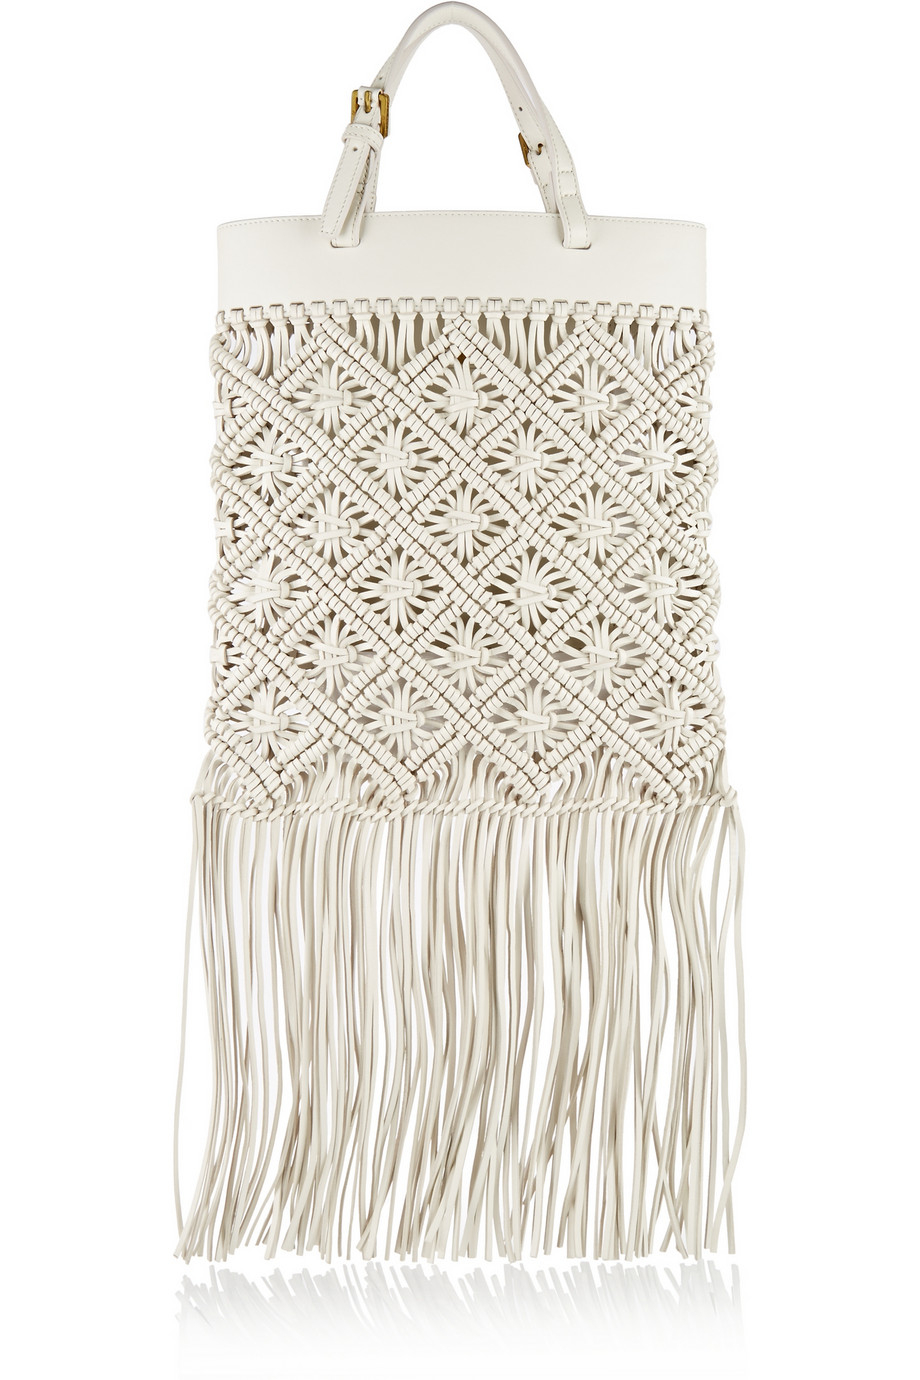 Lyst Tory Burch Fringed Macram 233 Leather Tote In White